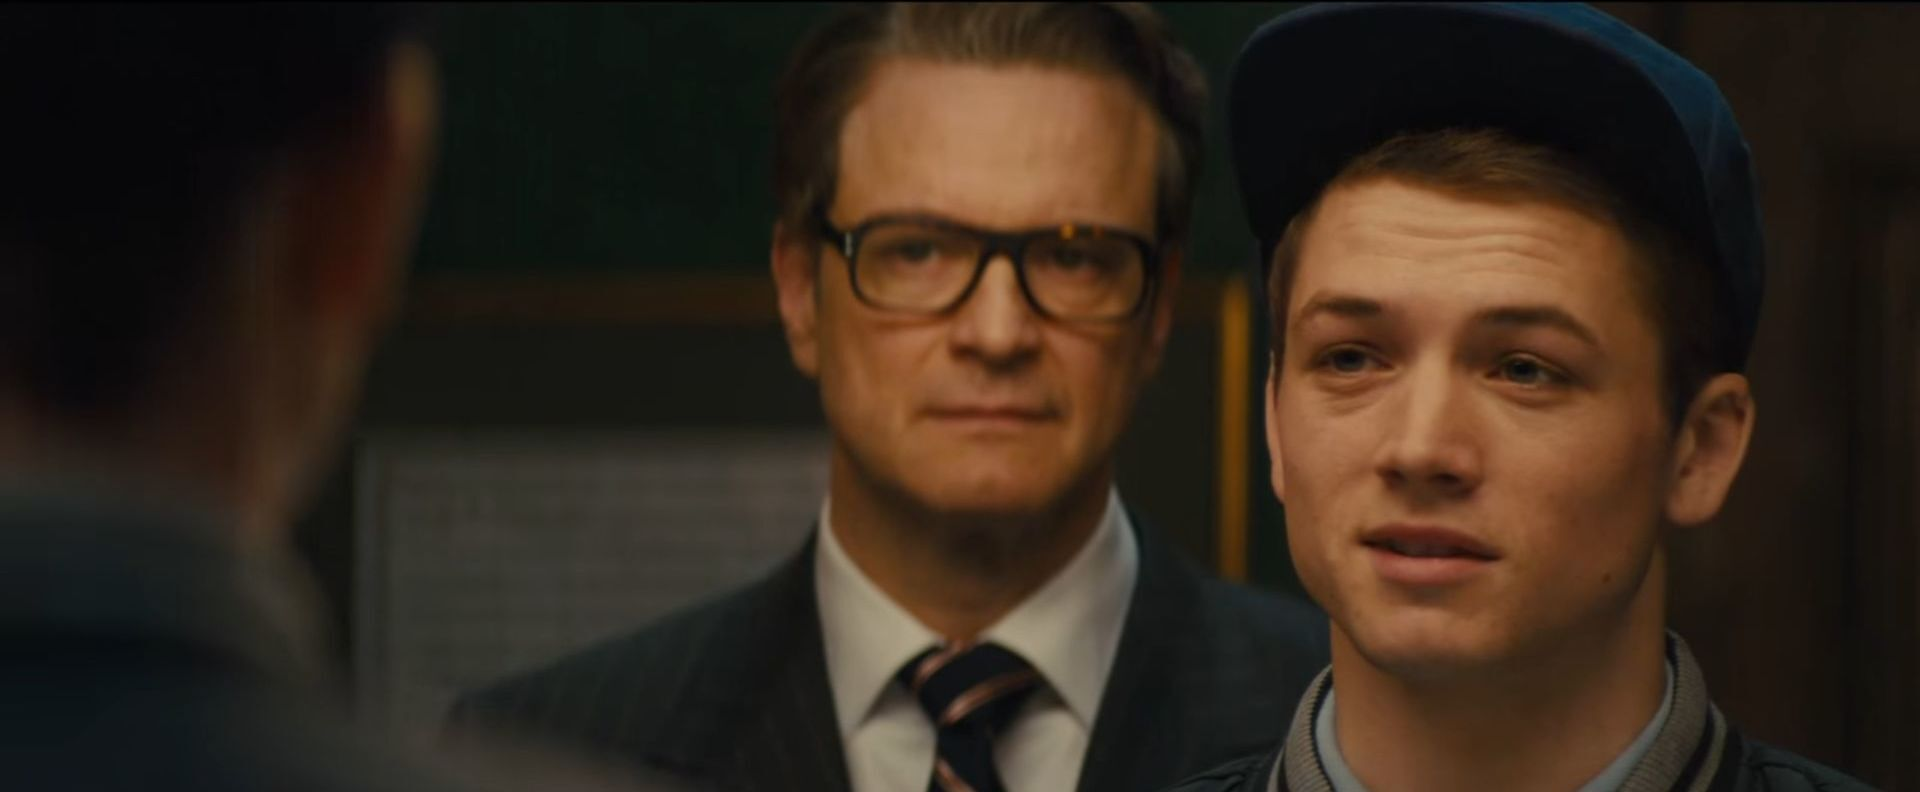 Kingsman The Secret Service trailer song - The Doors